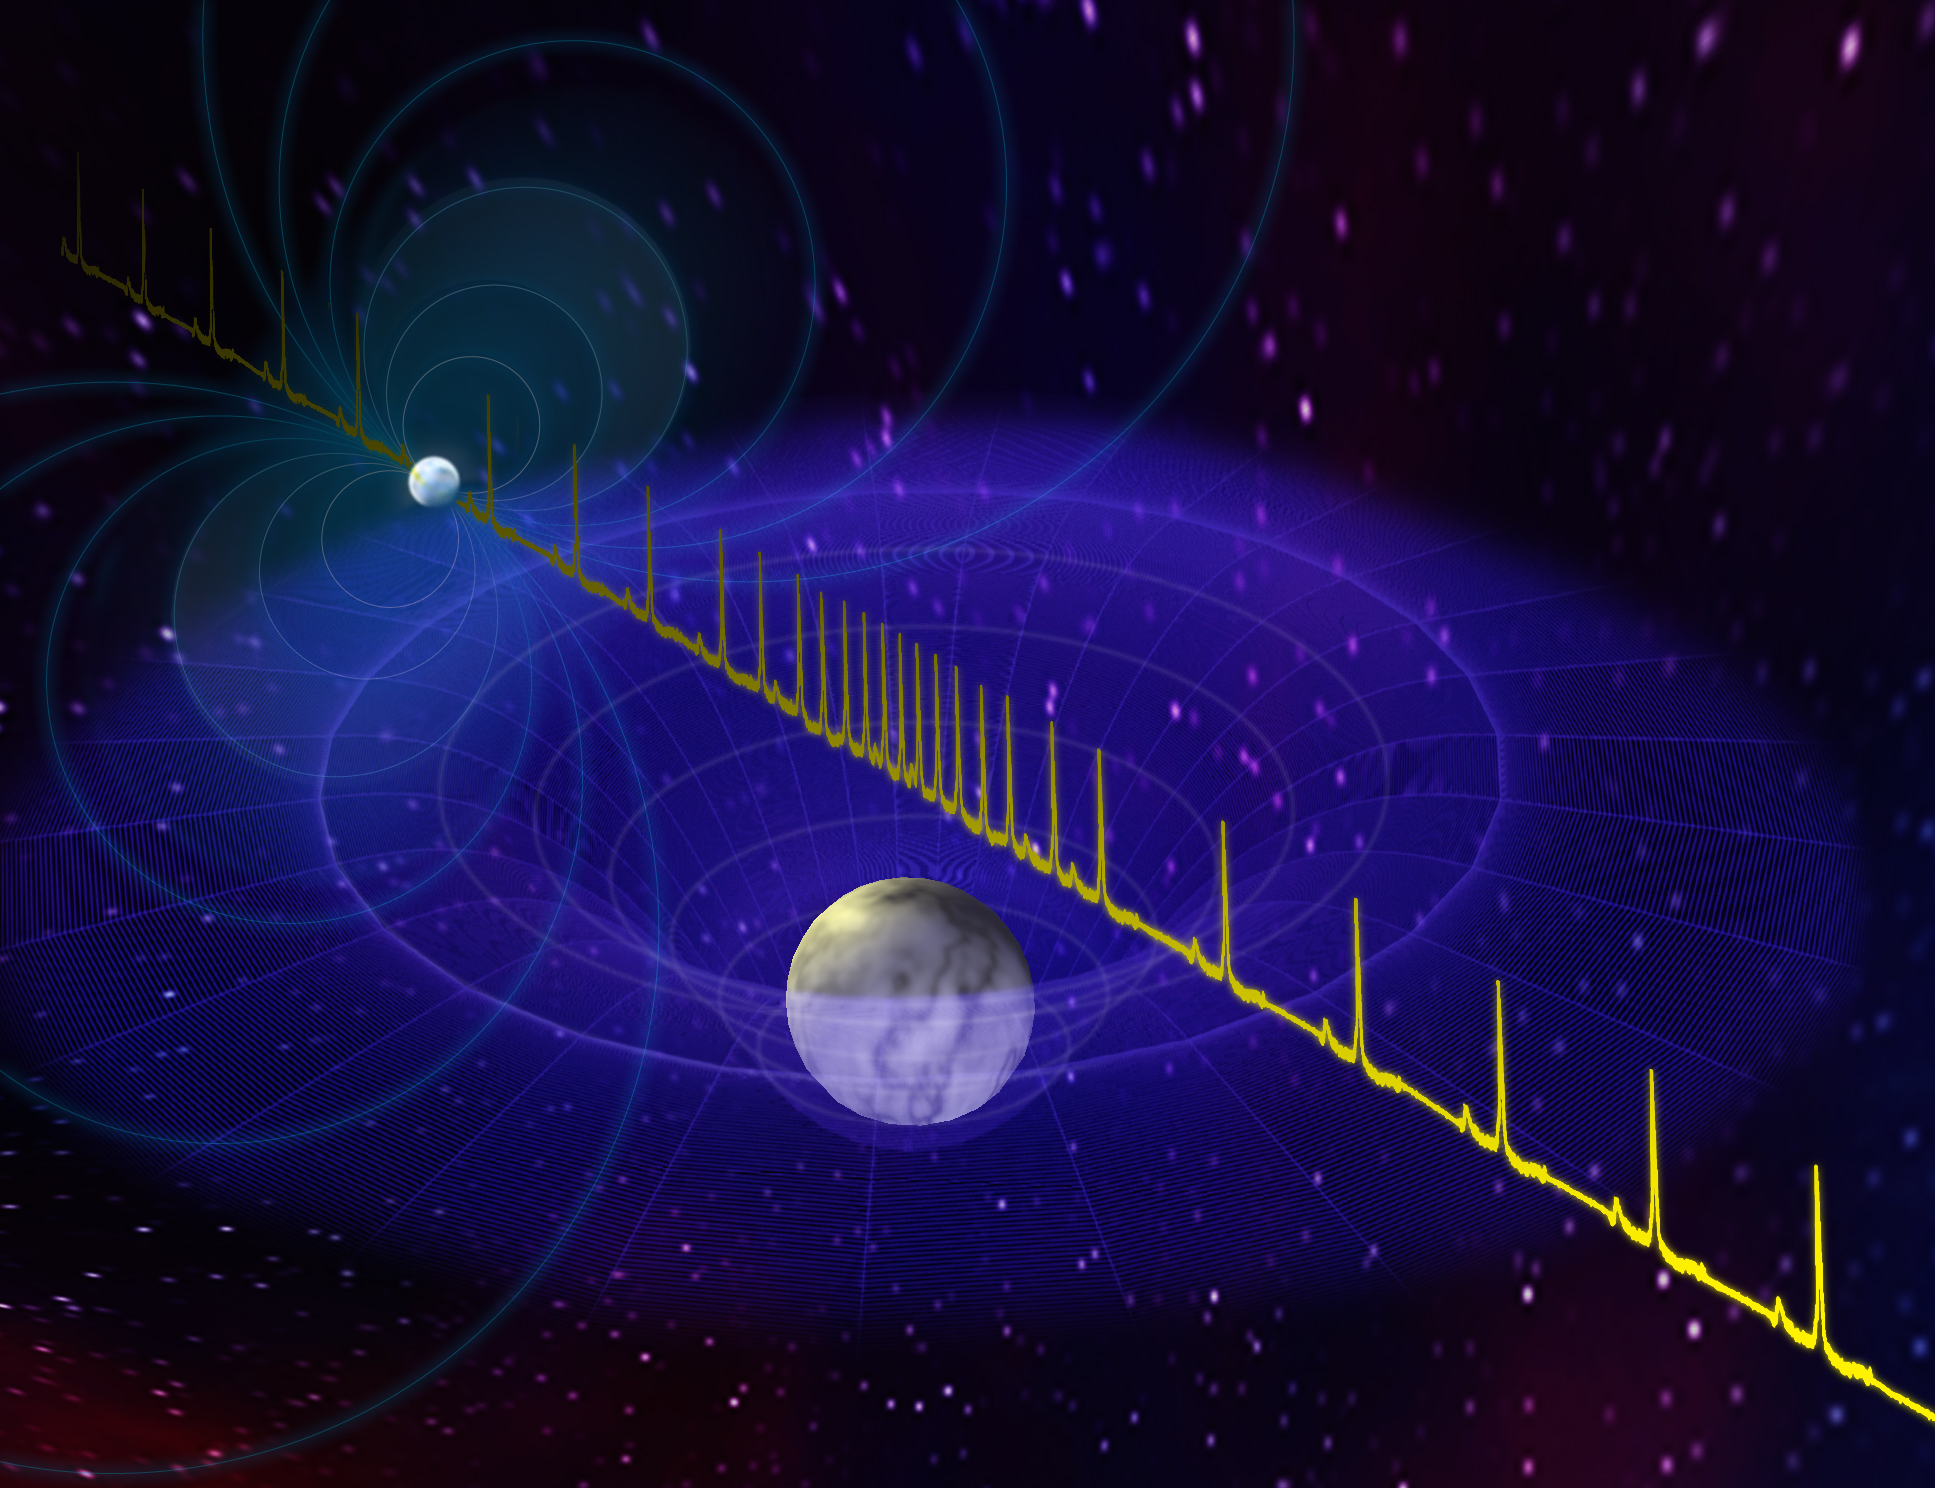 Most Massive Neutron Star Ever Detected, Almost too Massive to Exist - Green Bank Observatory